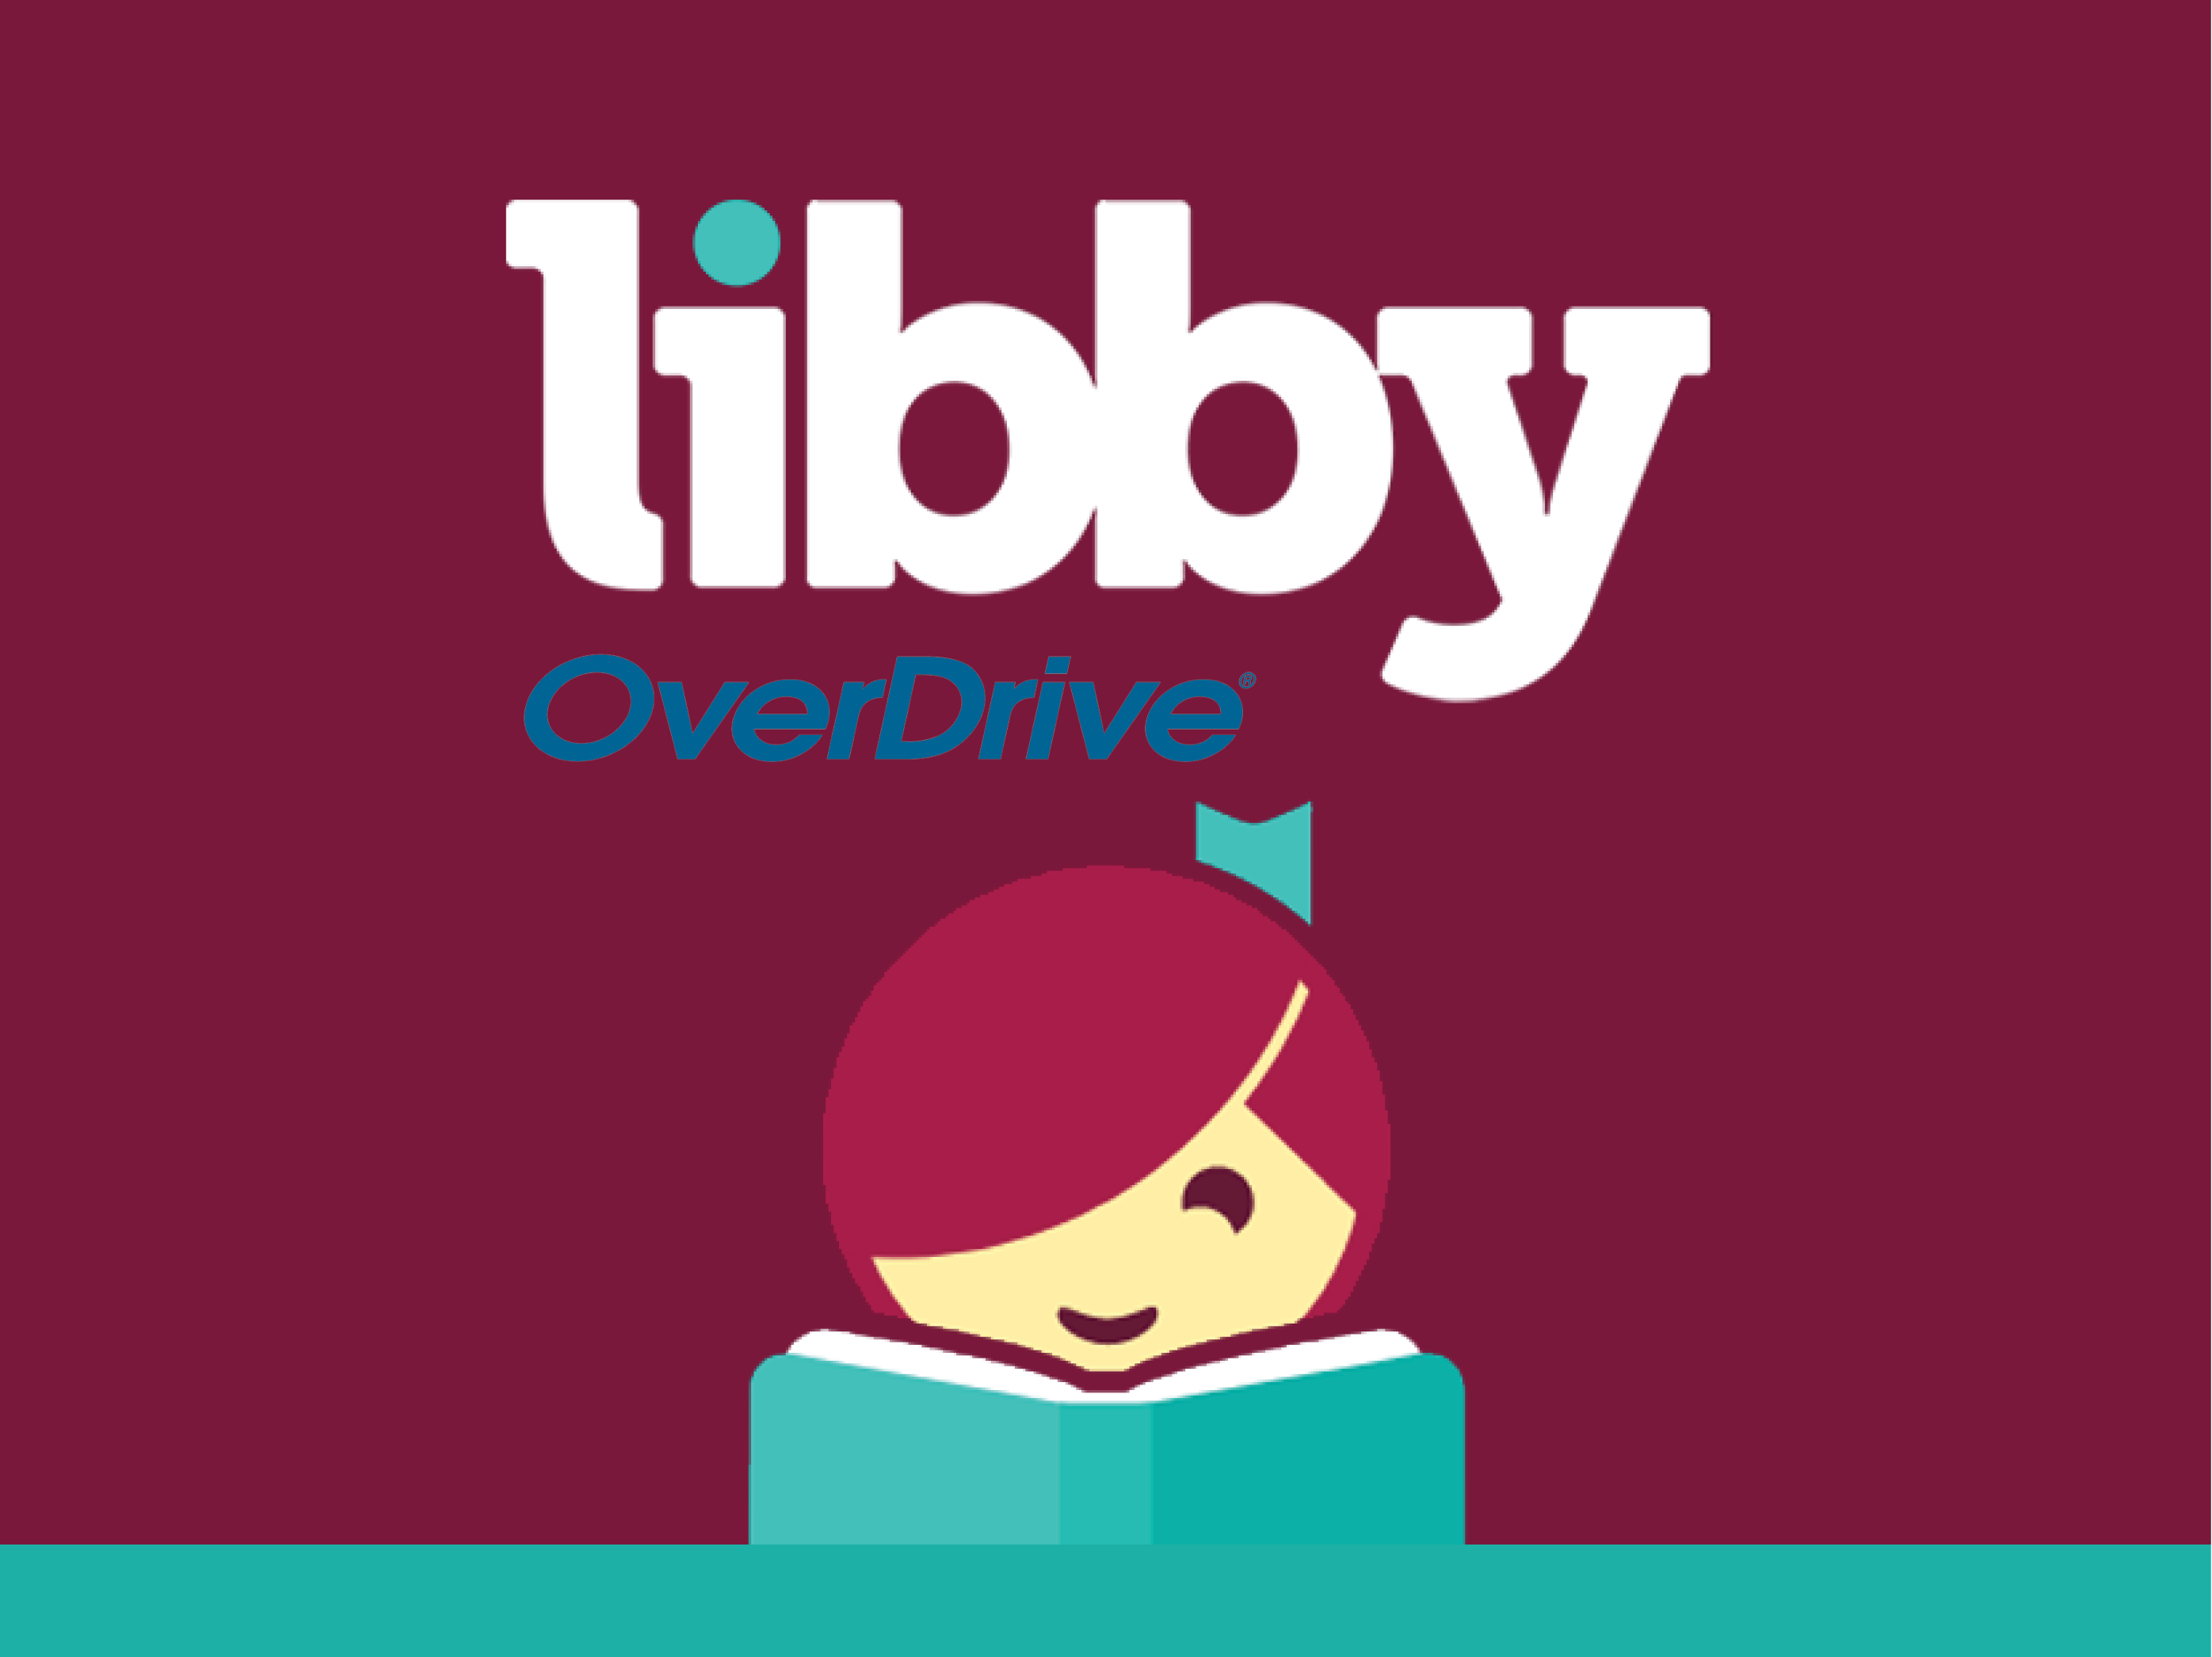 Web graphic for digital library Libby